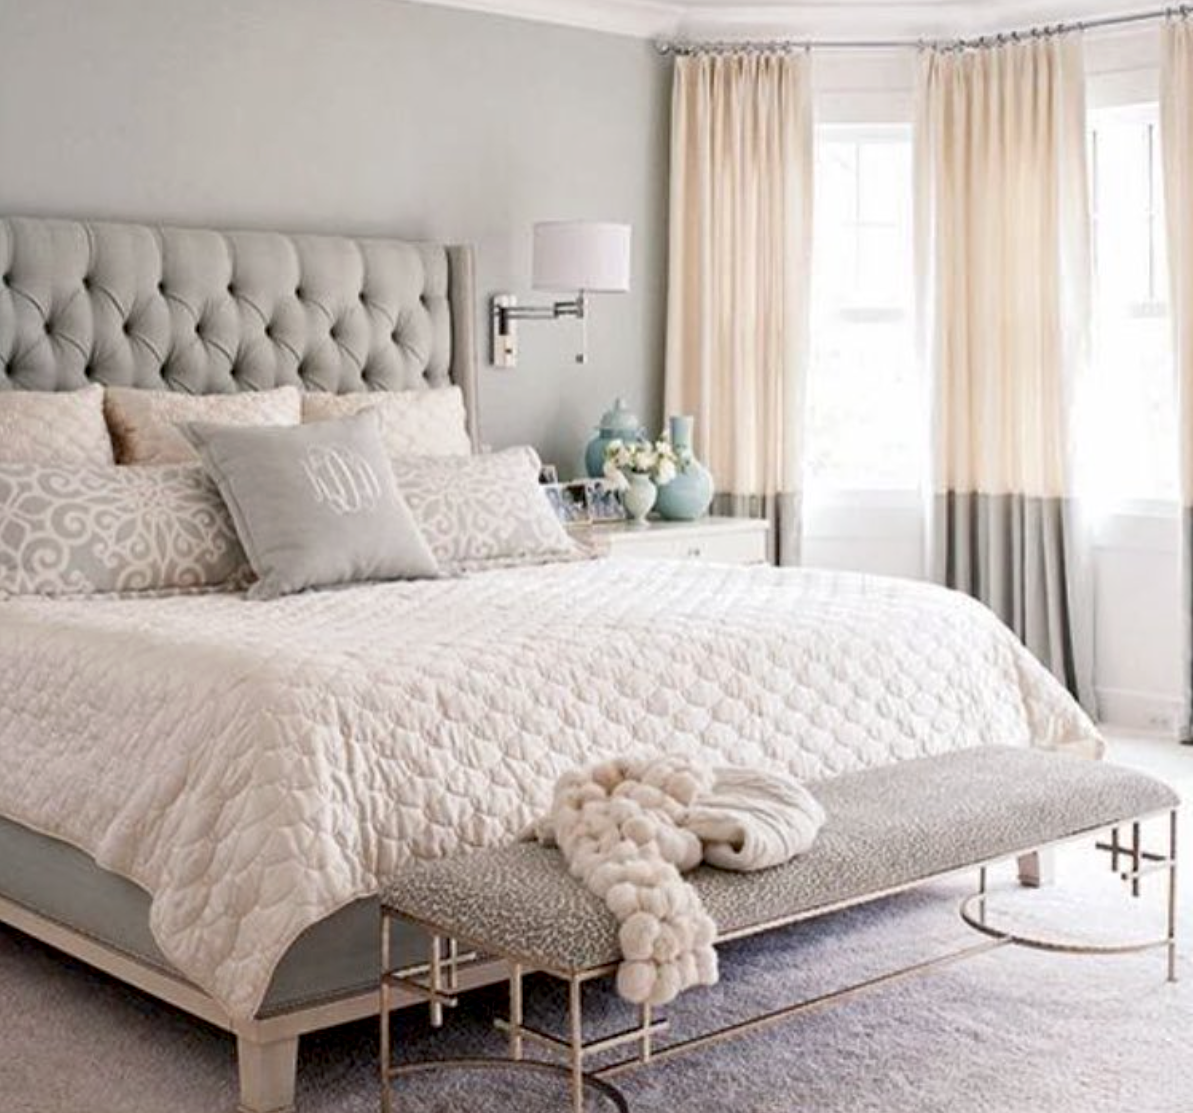 Bedroom decor ideas - Transitional style, light grey, cream and white color  palette. Tufted headboard, bench, drum wall sconces above side tables and  full ...